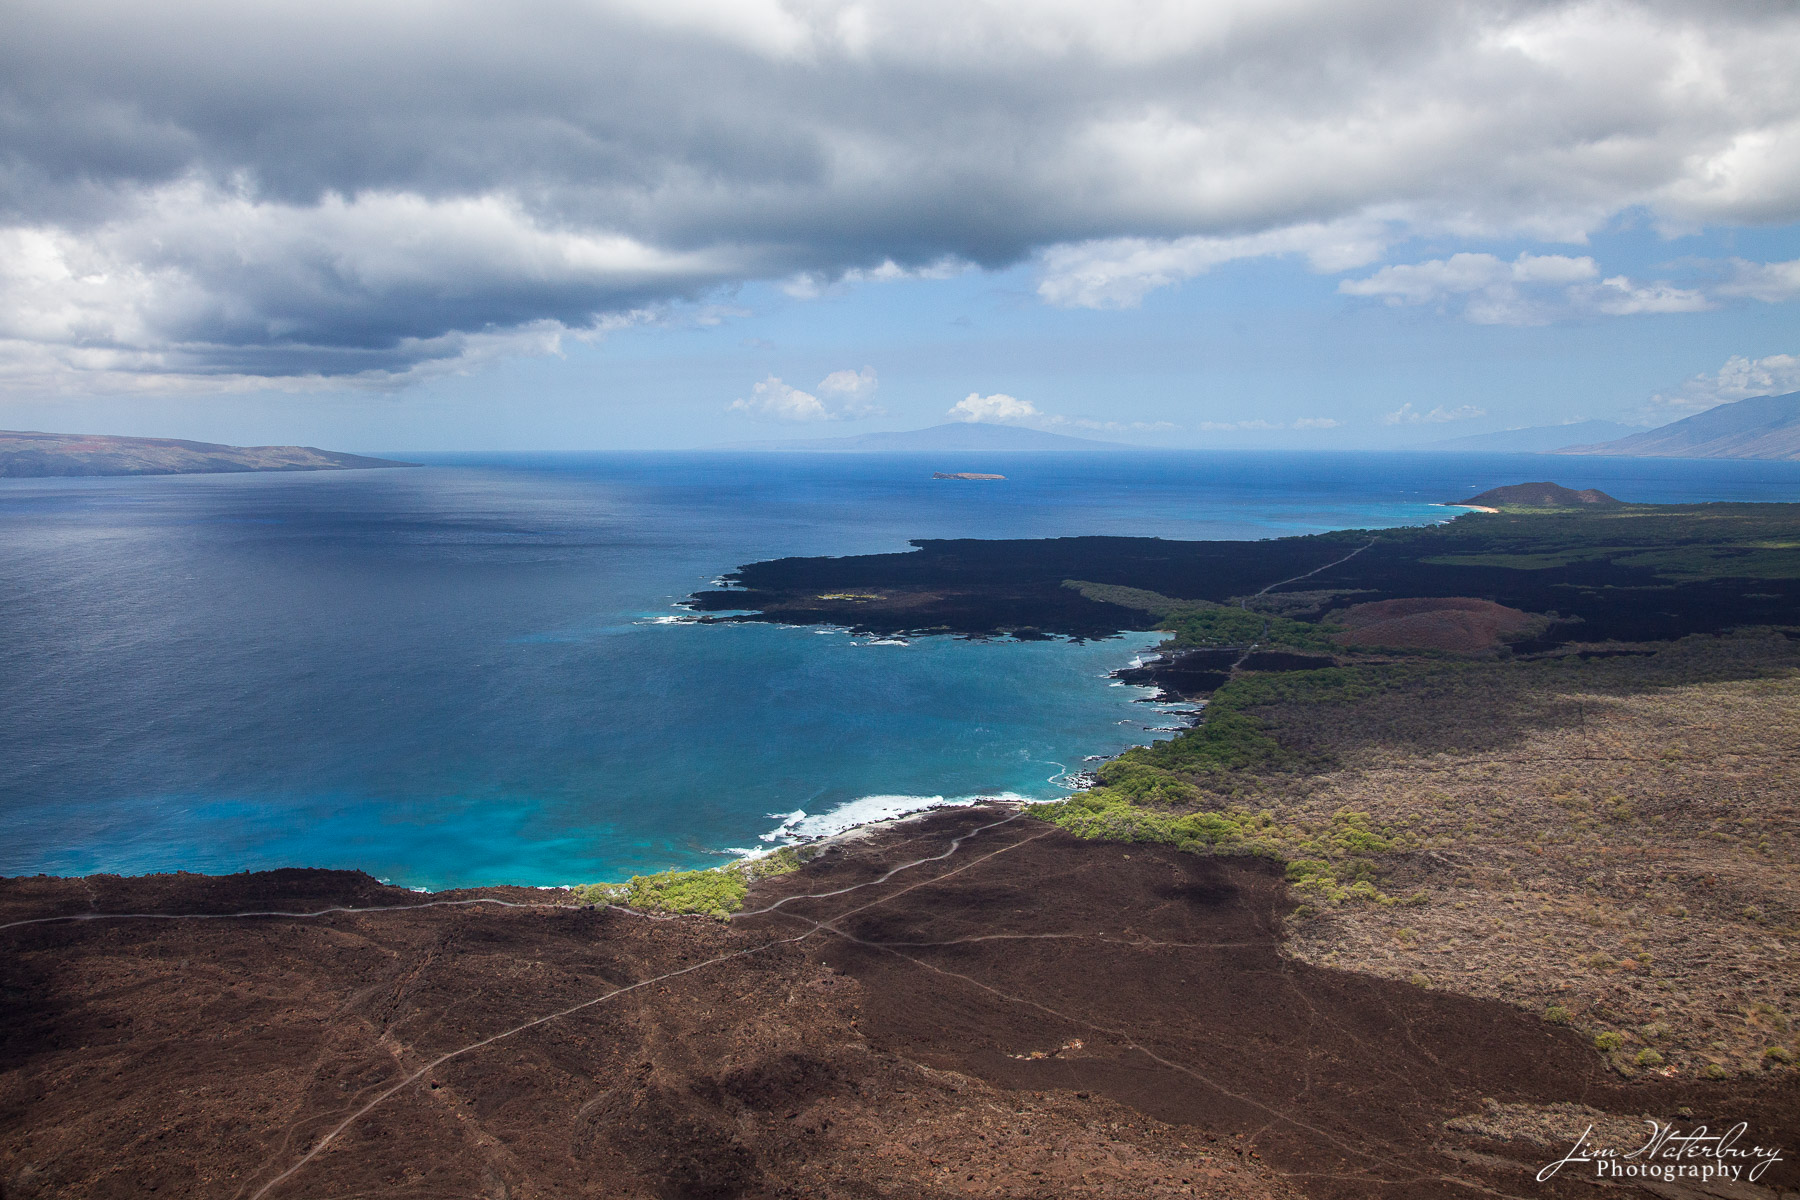 The shore of the island of Maui, as photographed from a helicopter.